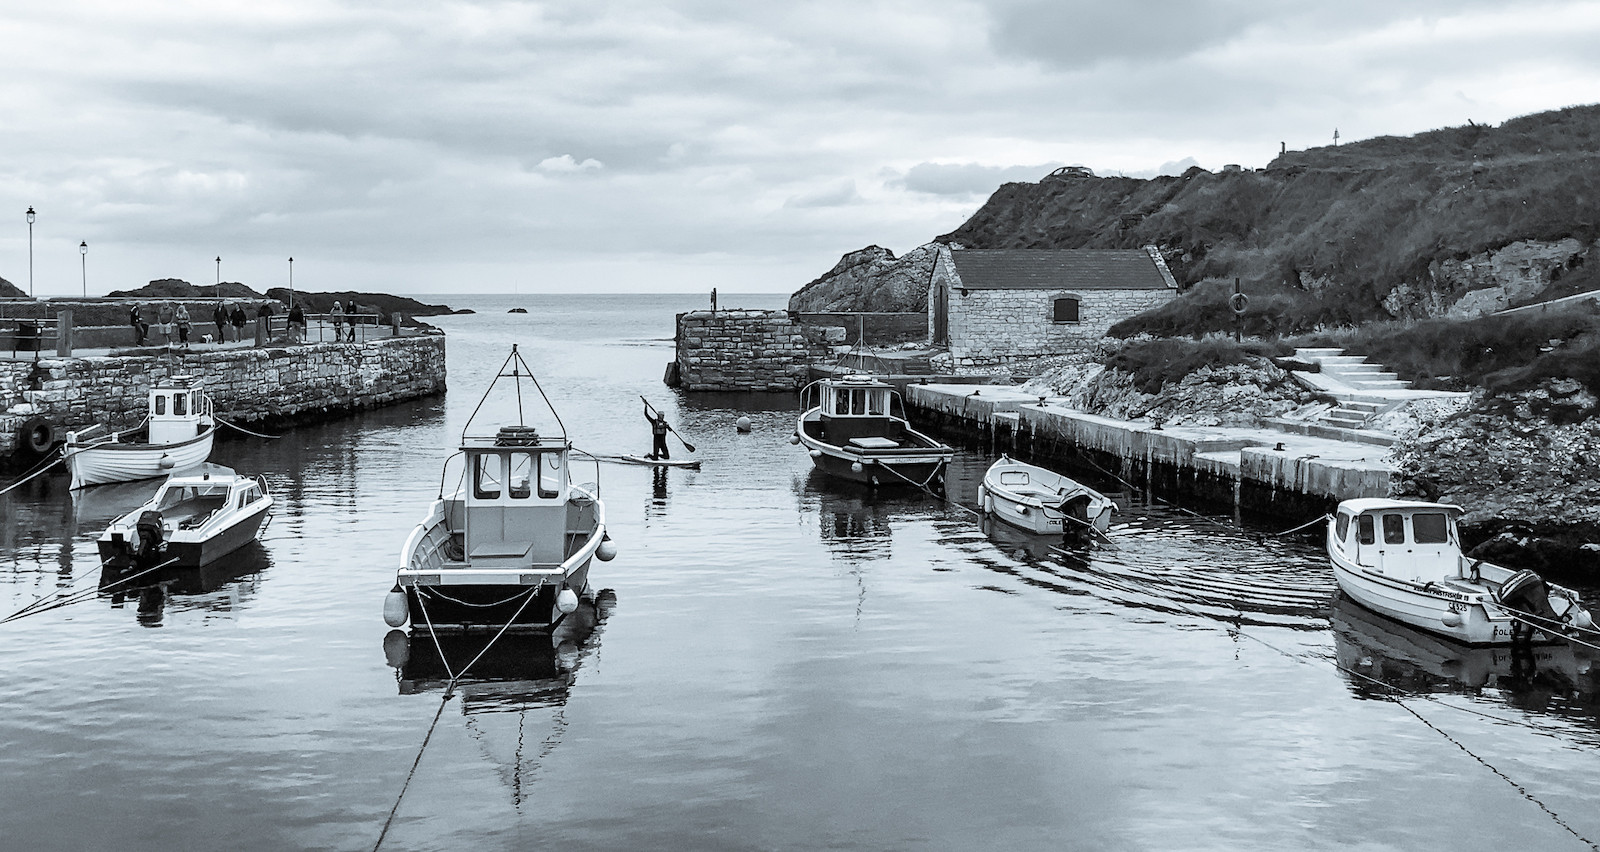 'Ballintoy Harbour' by Martin McKee ( 8 marks )